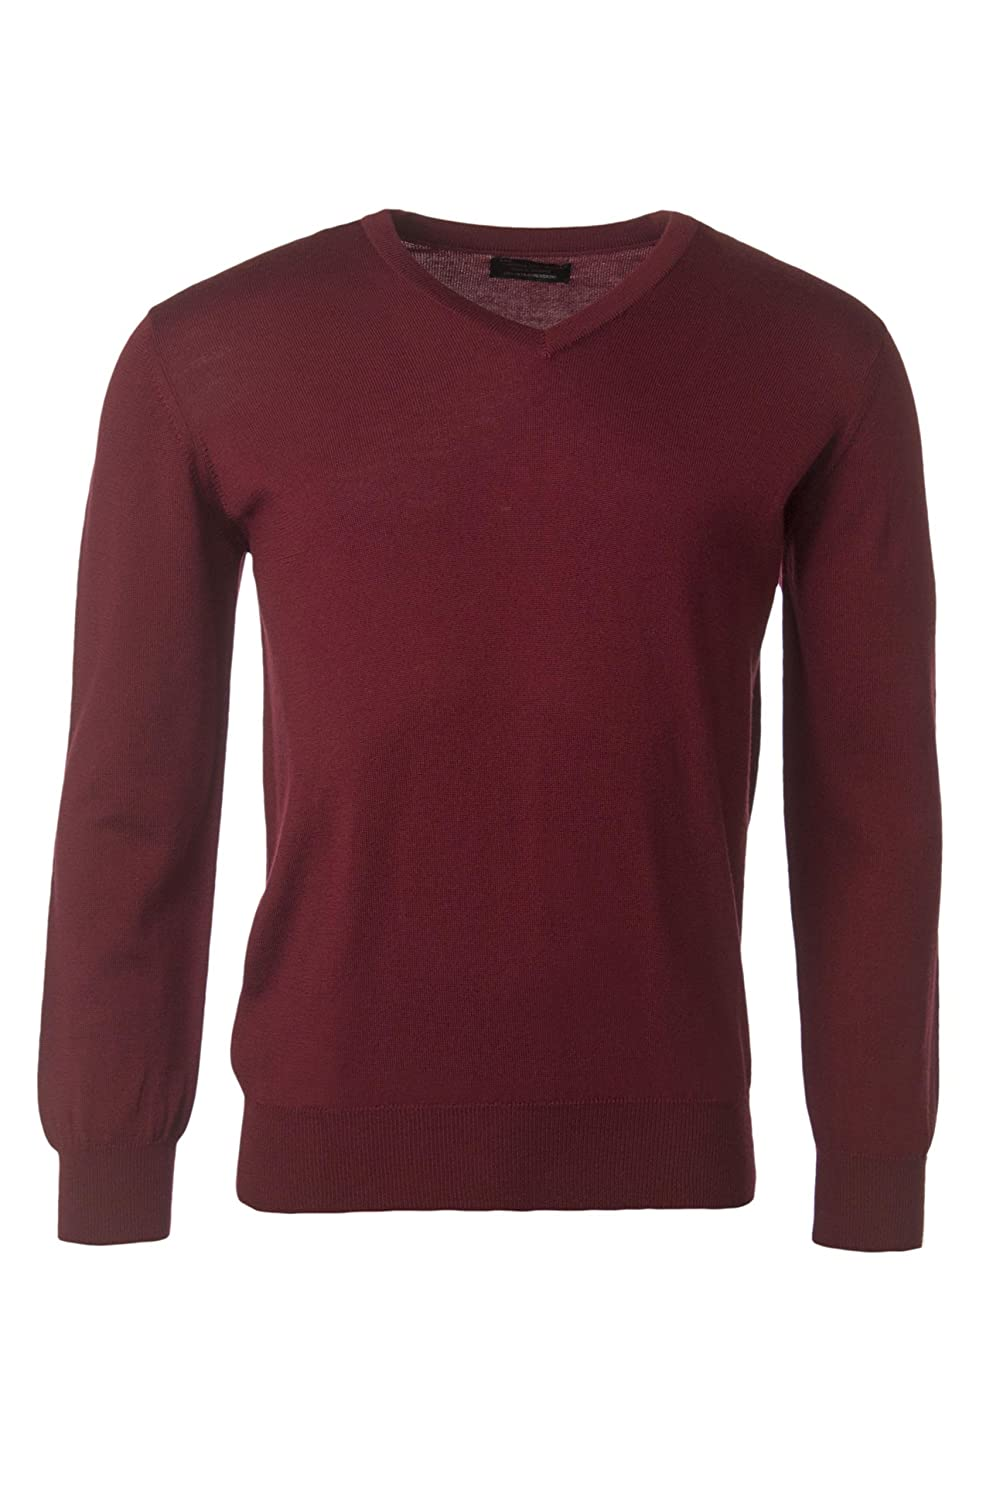 1b67a0e7917a48 Great   British Knitwear Men s HD700 100% Merino Wool V Neck Jumper. Made  in Scotland-Bordeaux-Small  Amazon.co.uk  Clothing